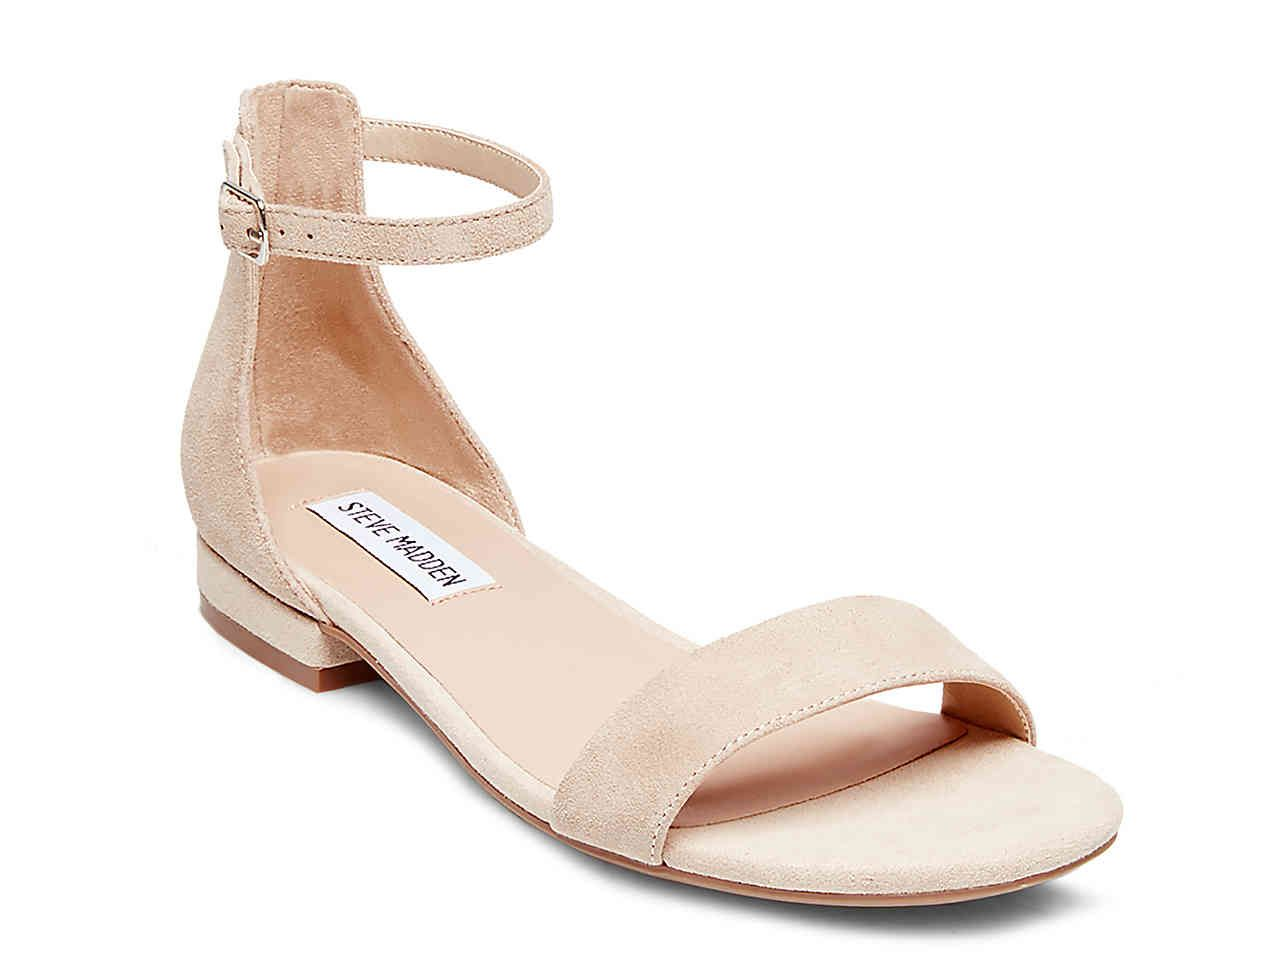 dcb1cb2f740a9   I have a nude sandal like this and wear it ALL the time! Might be worth  considering.   Steve Madden Lamp Flat Sandal